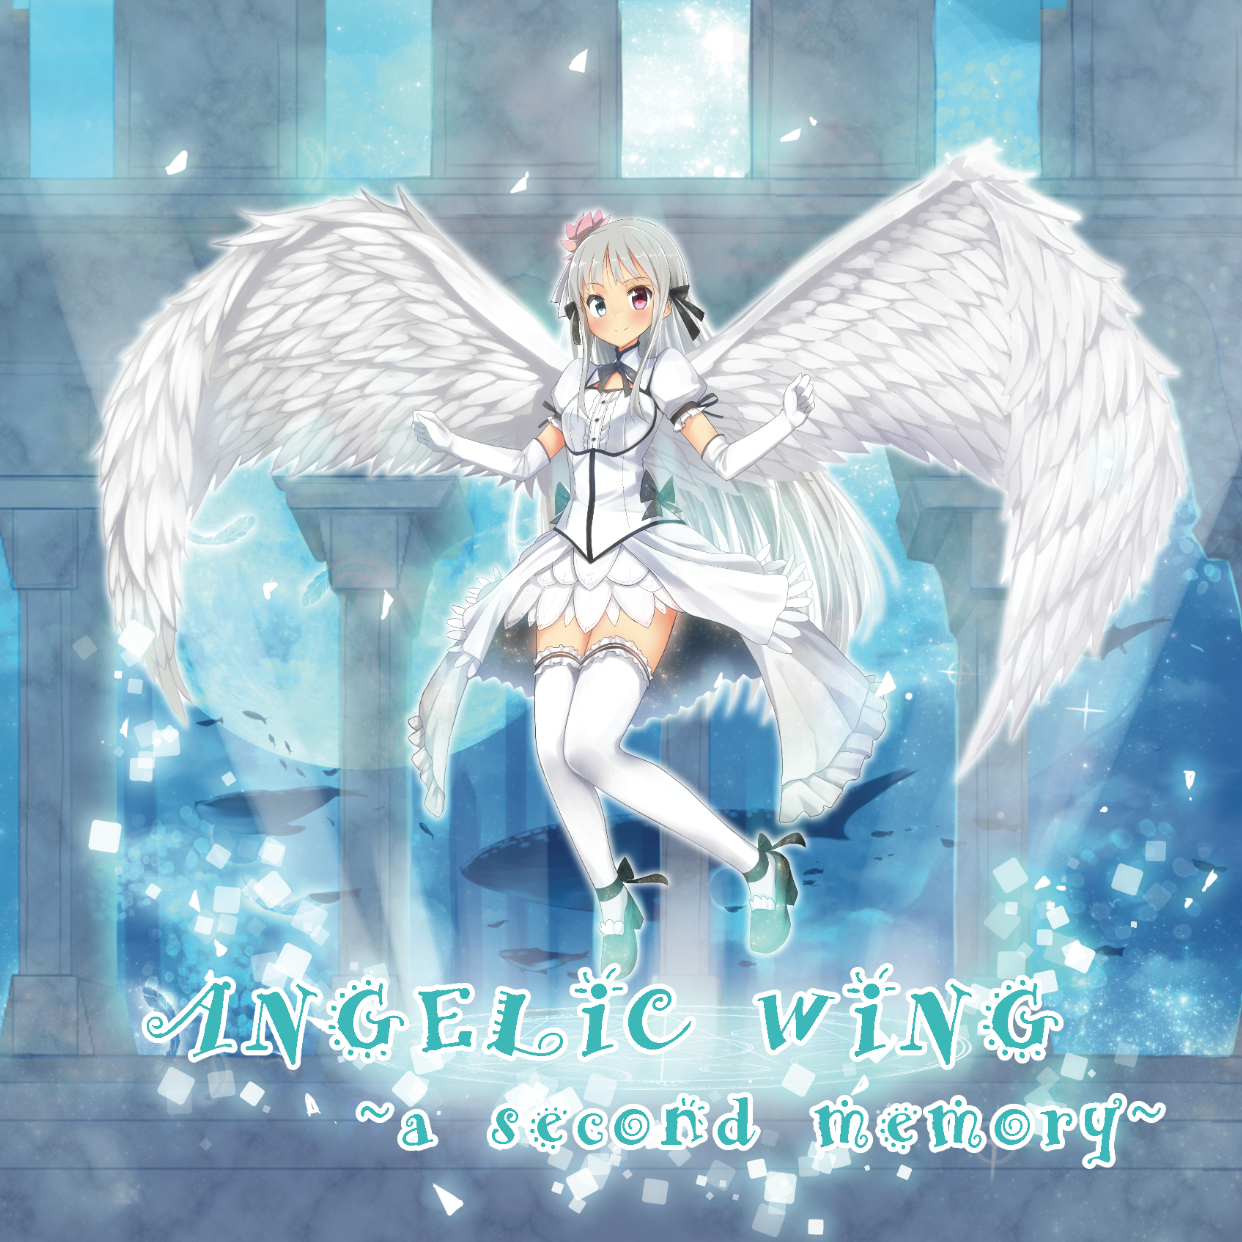 Angelic wing ~a second memory~